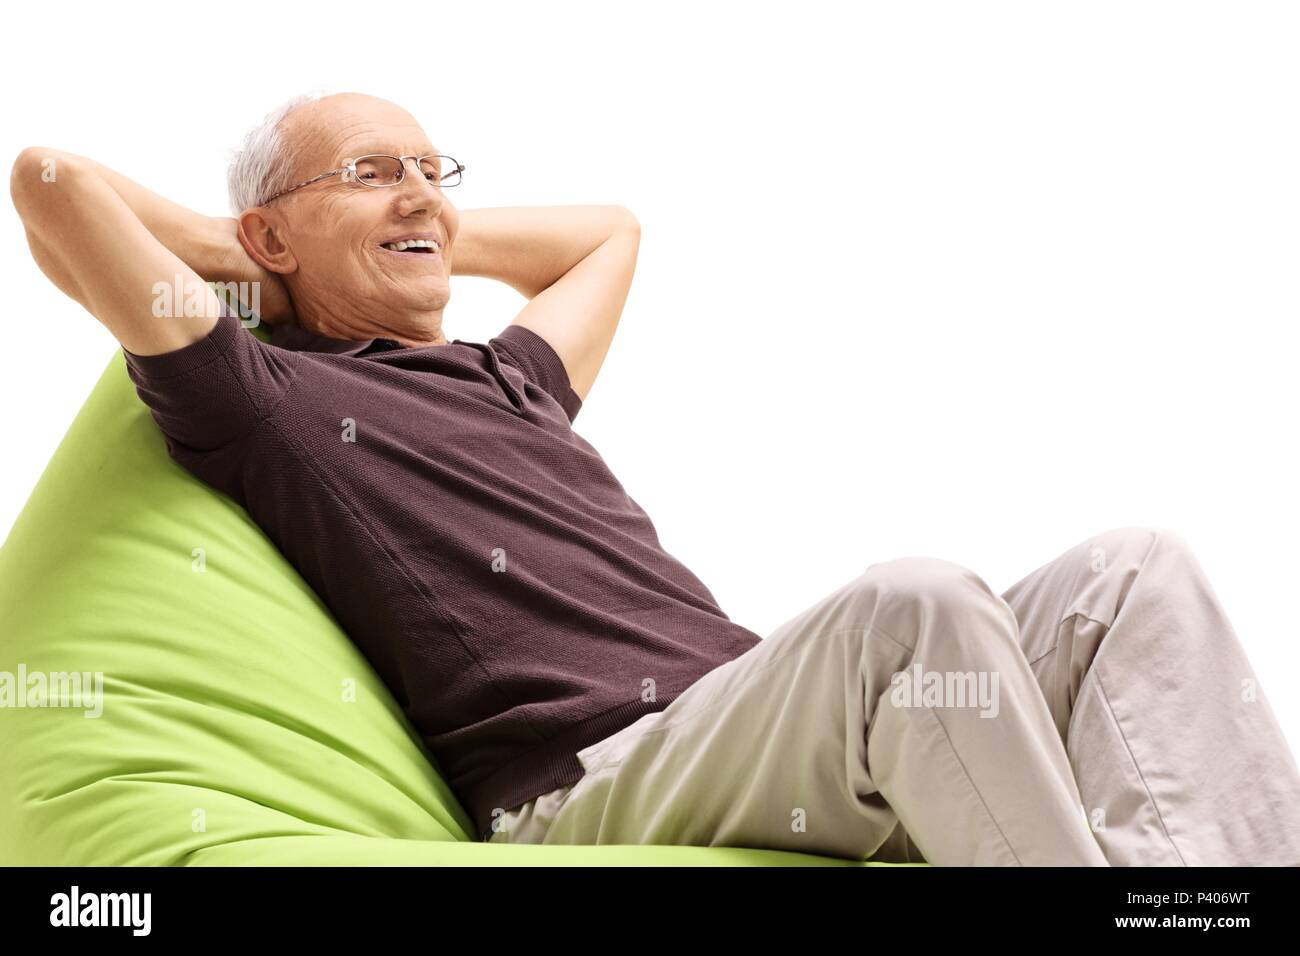 Relaxed senior sitting on a beanbag isolated on white background - Stock Image